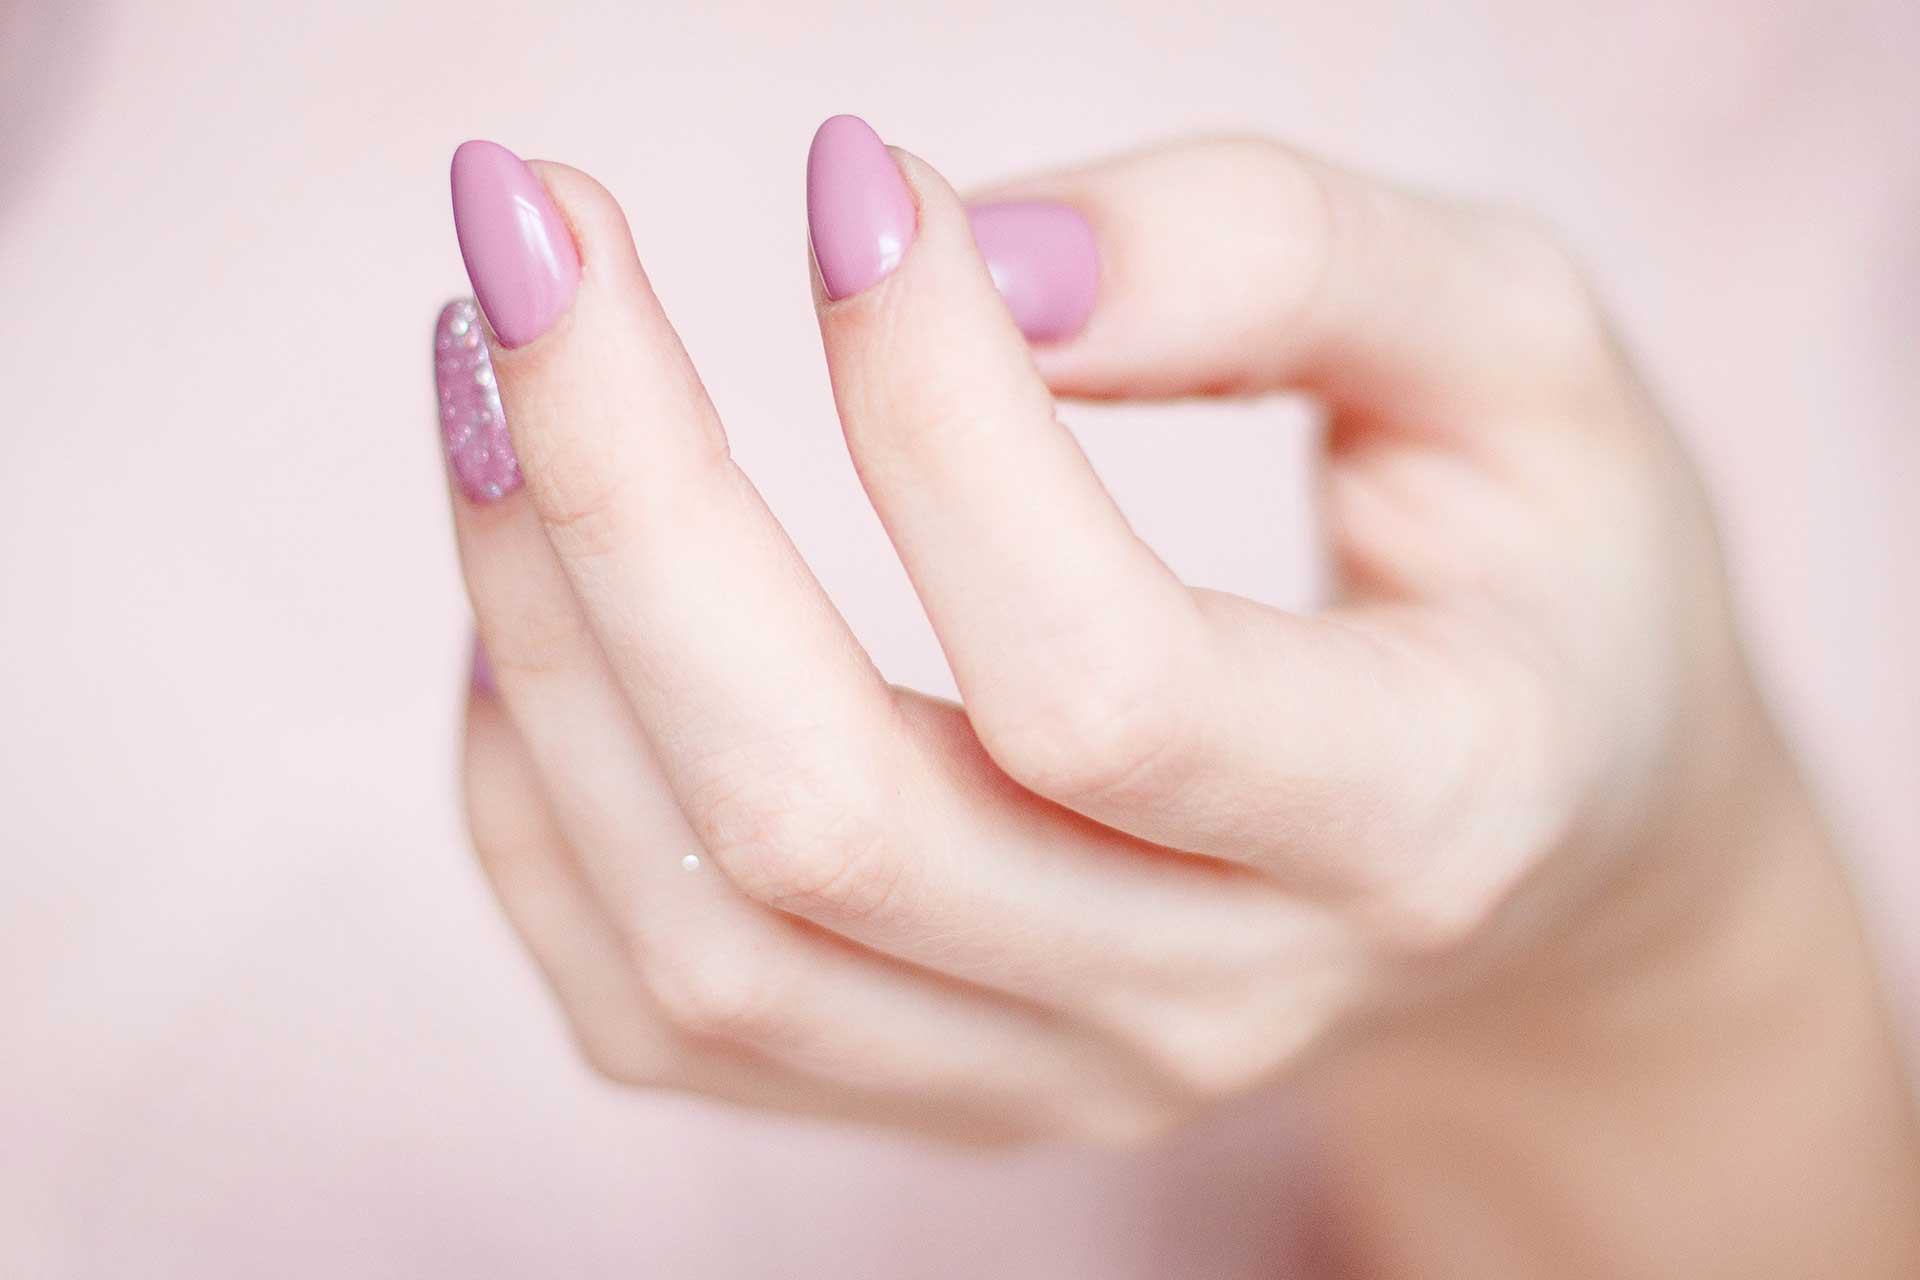 close-up of hand with manicure and pink nails from happy nails